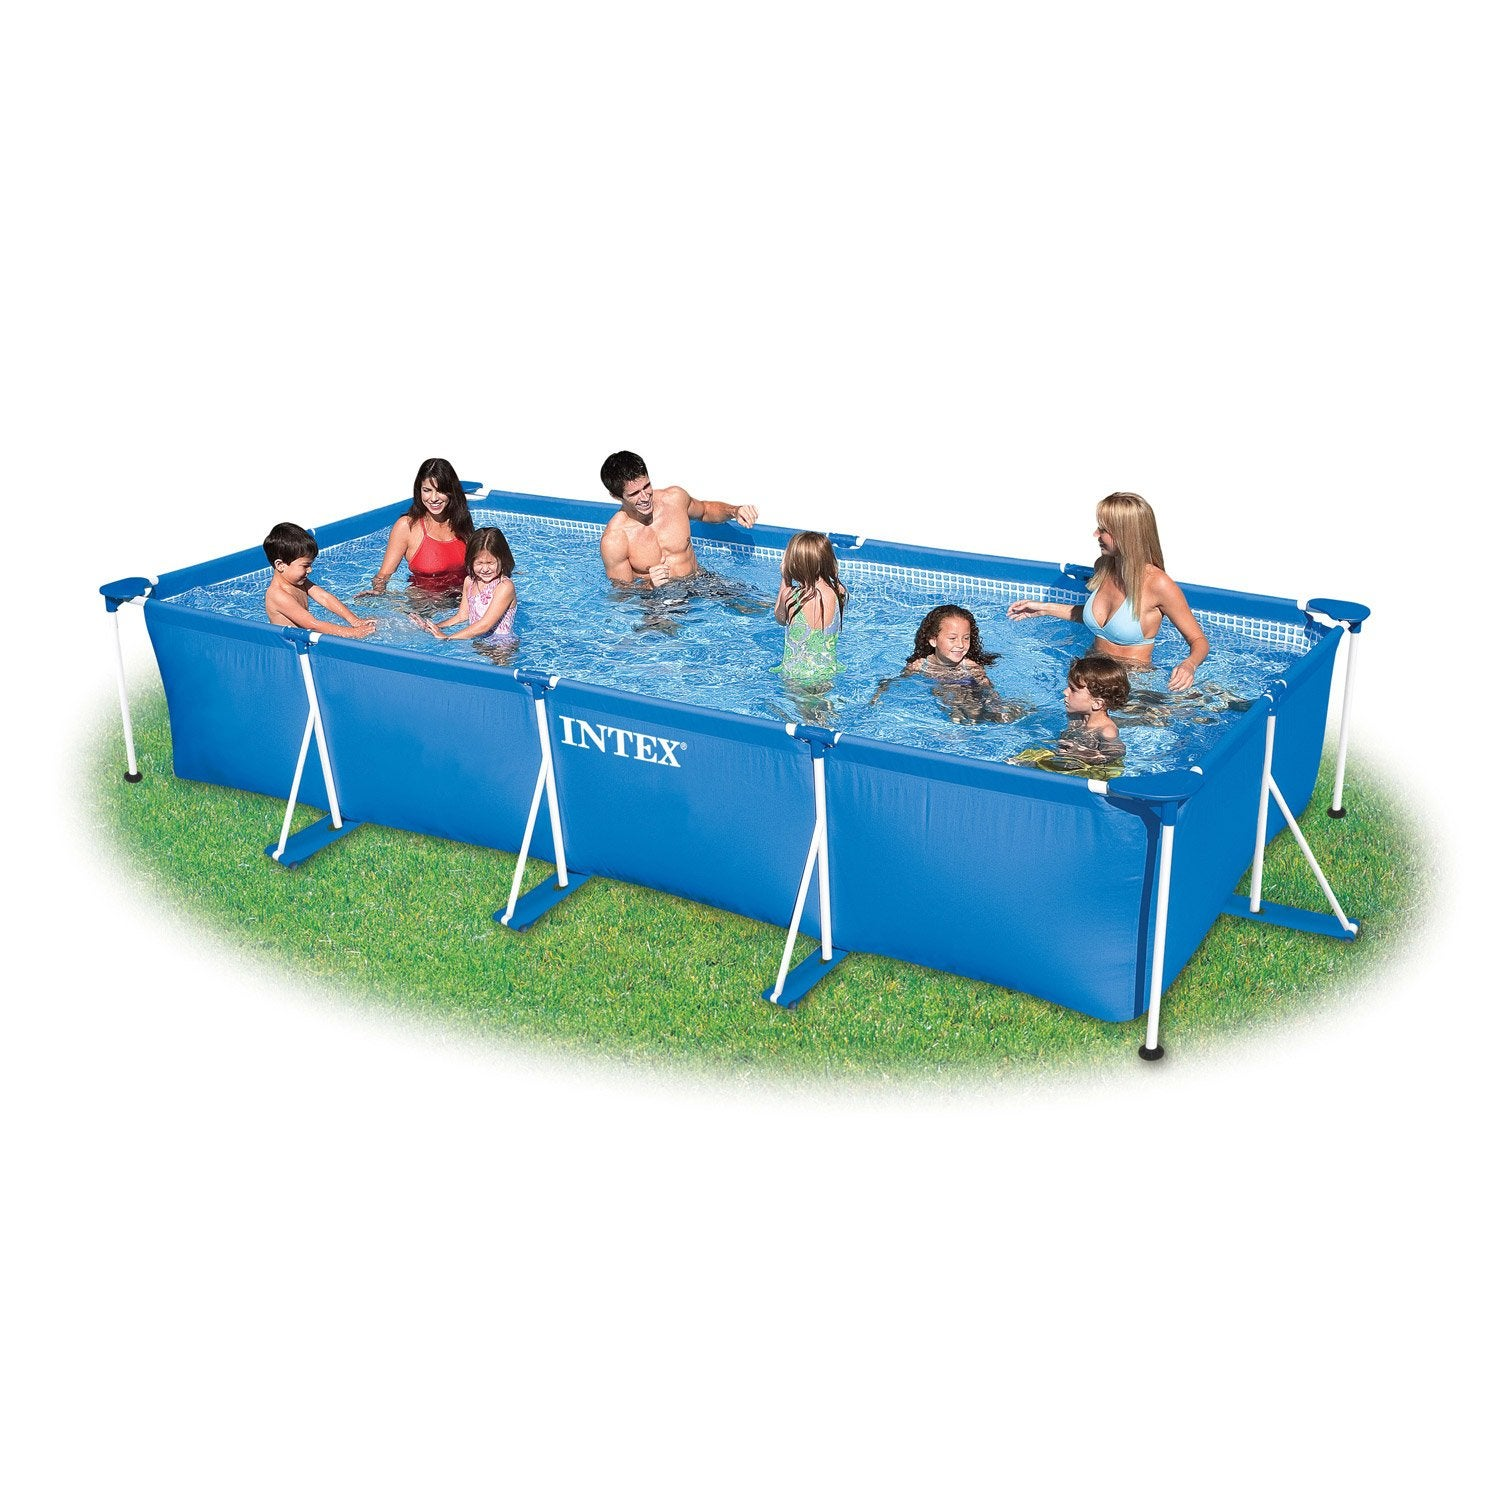 Piscine hors sol autoportante tubulaire intex l x l for Piscine hors sol 4mx3m